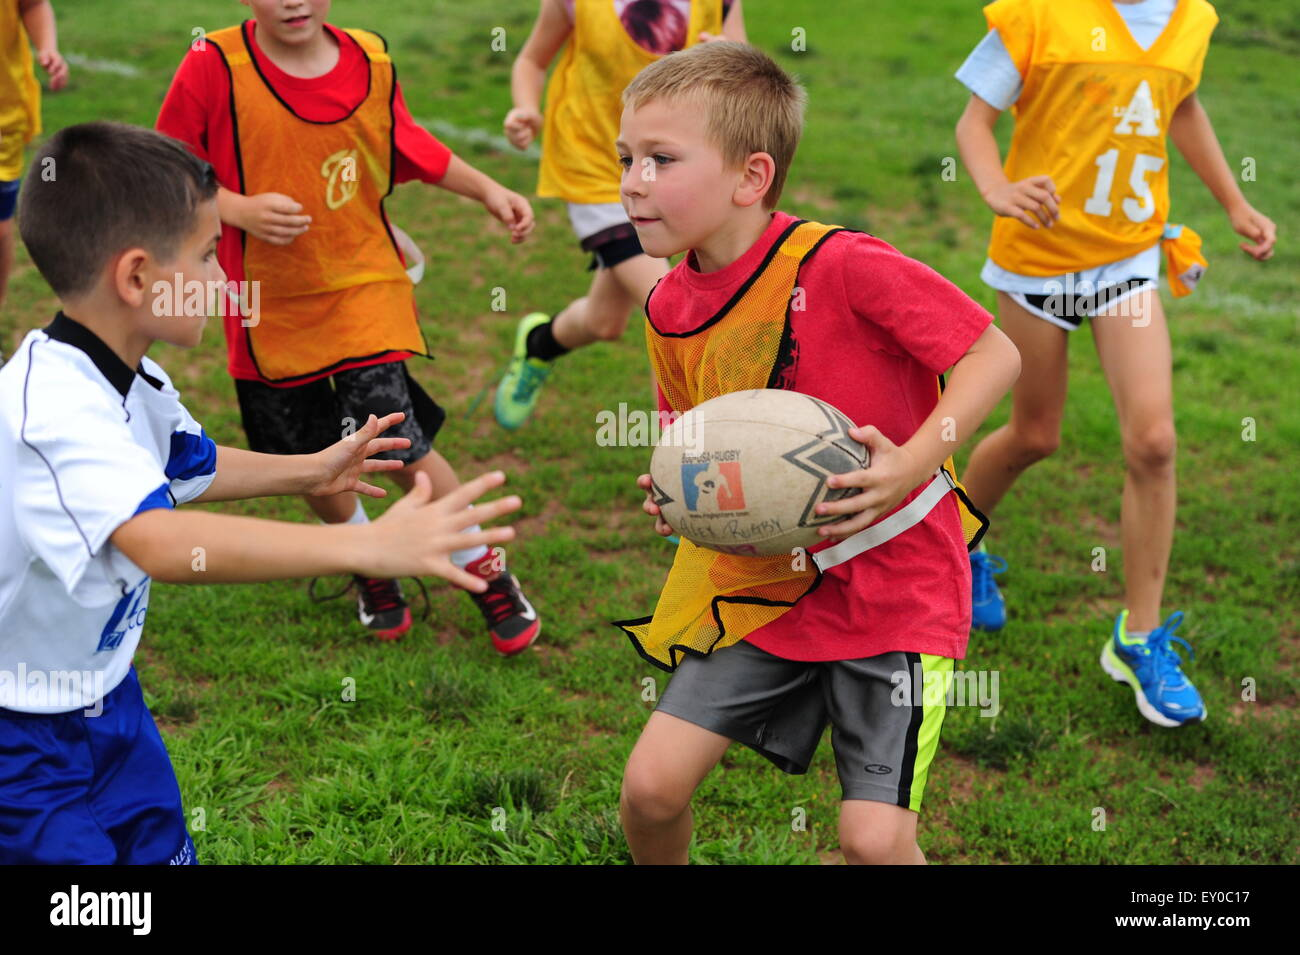 sports-youth-rugby-played-in-the-usa-in-virginia-children-9-10-11-EY0C17.jpg